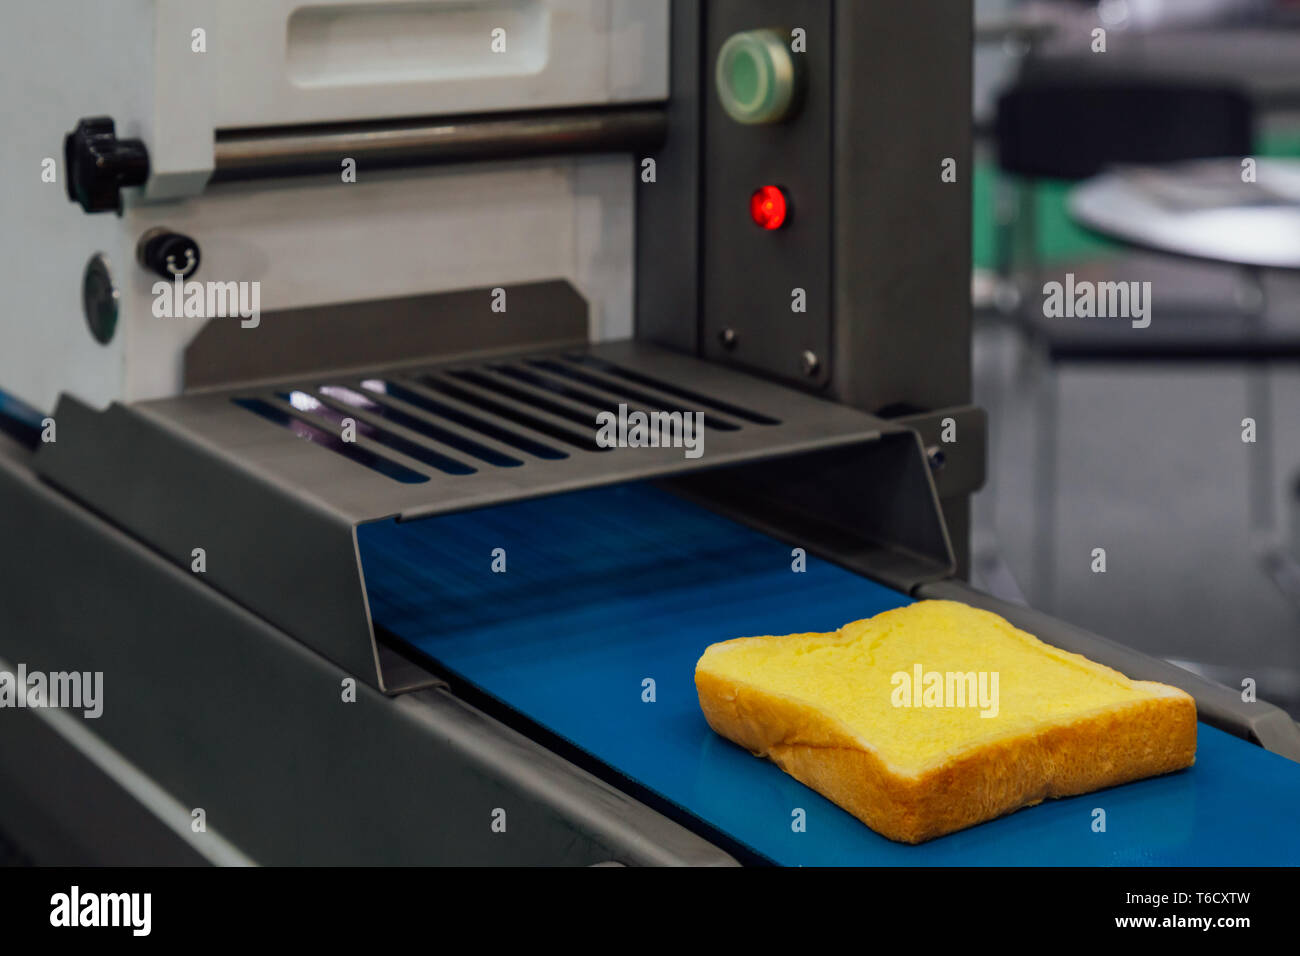 butter spread on fresh bread slice in production line on the conveyor belt of automatic bread buttering machine at bakery factory. food innovation ind - Stock Image